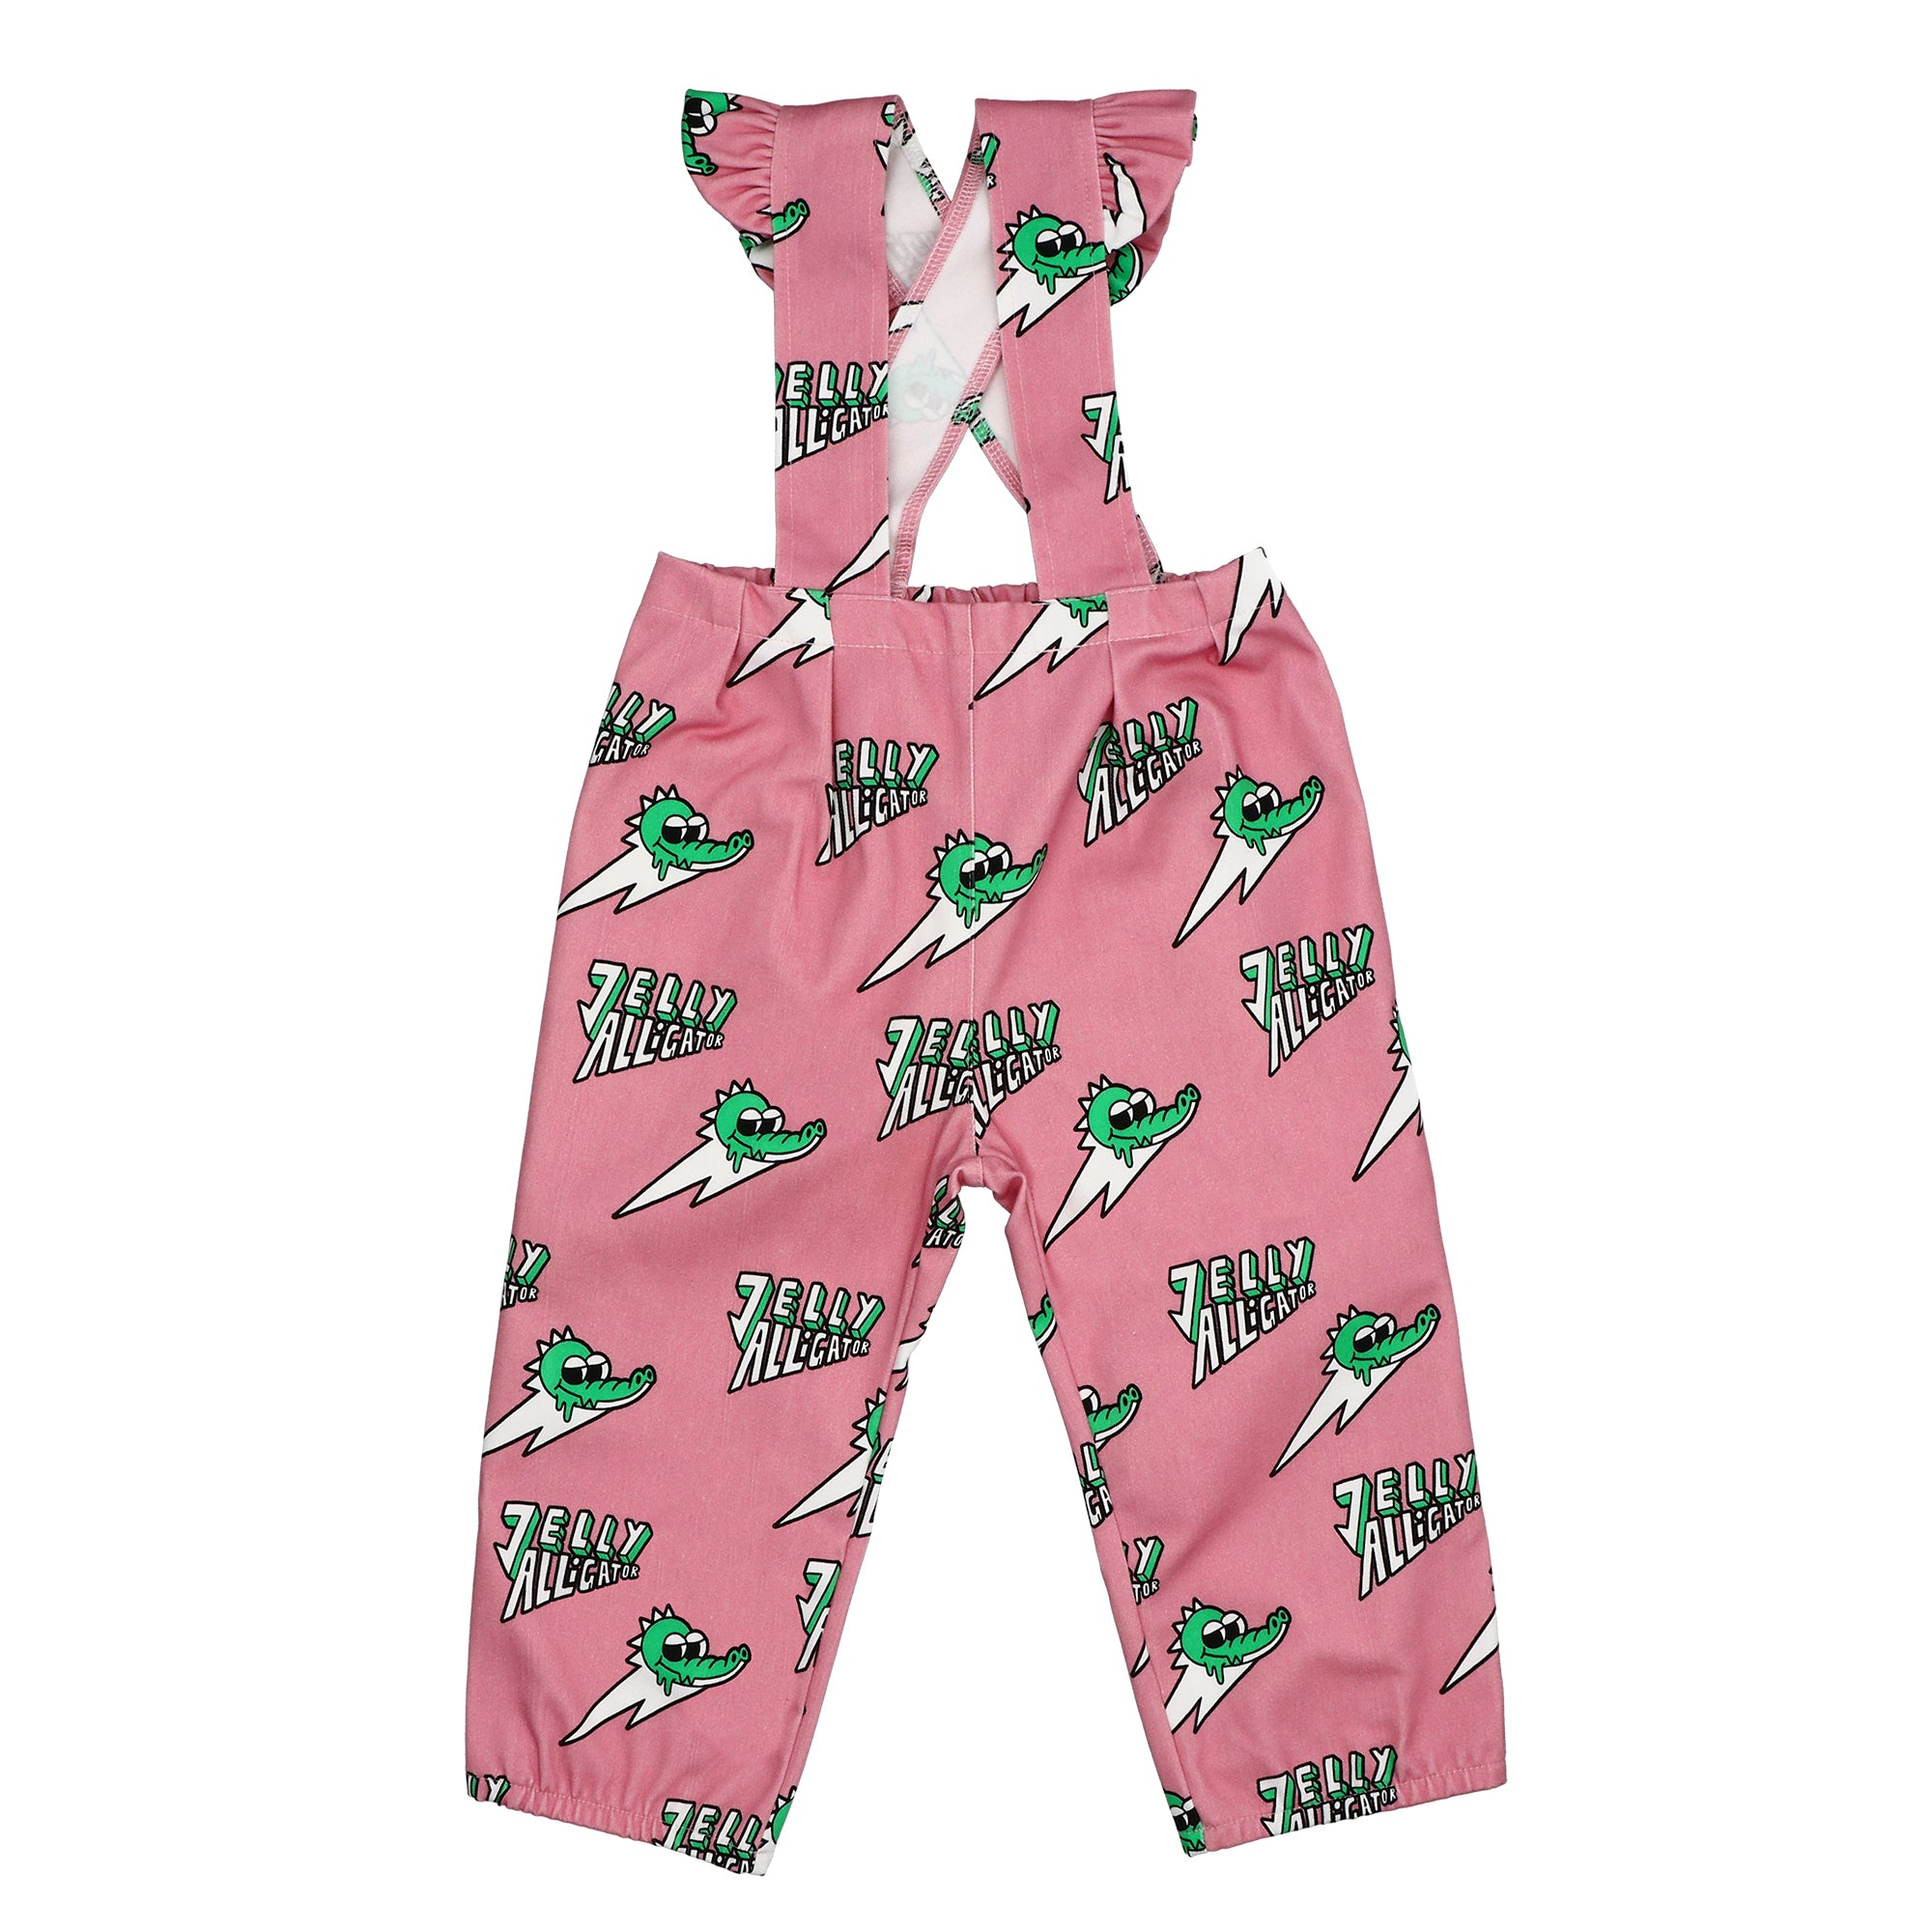 Jelly Alligator Pink Dungarees